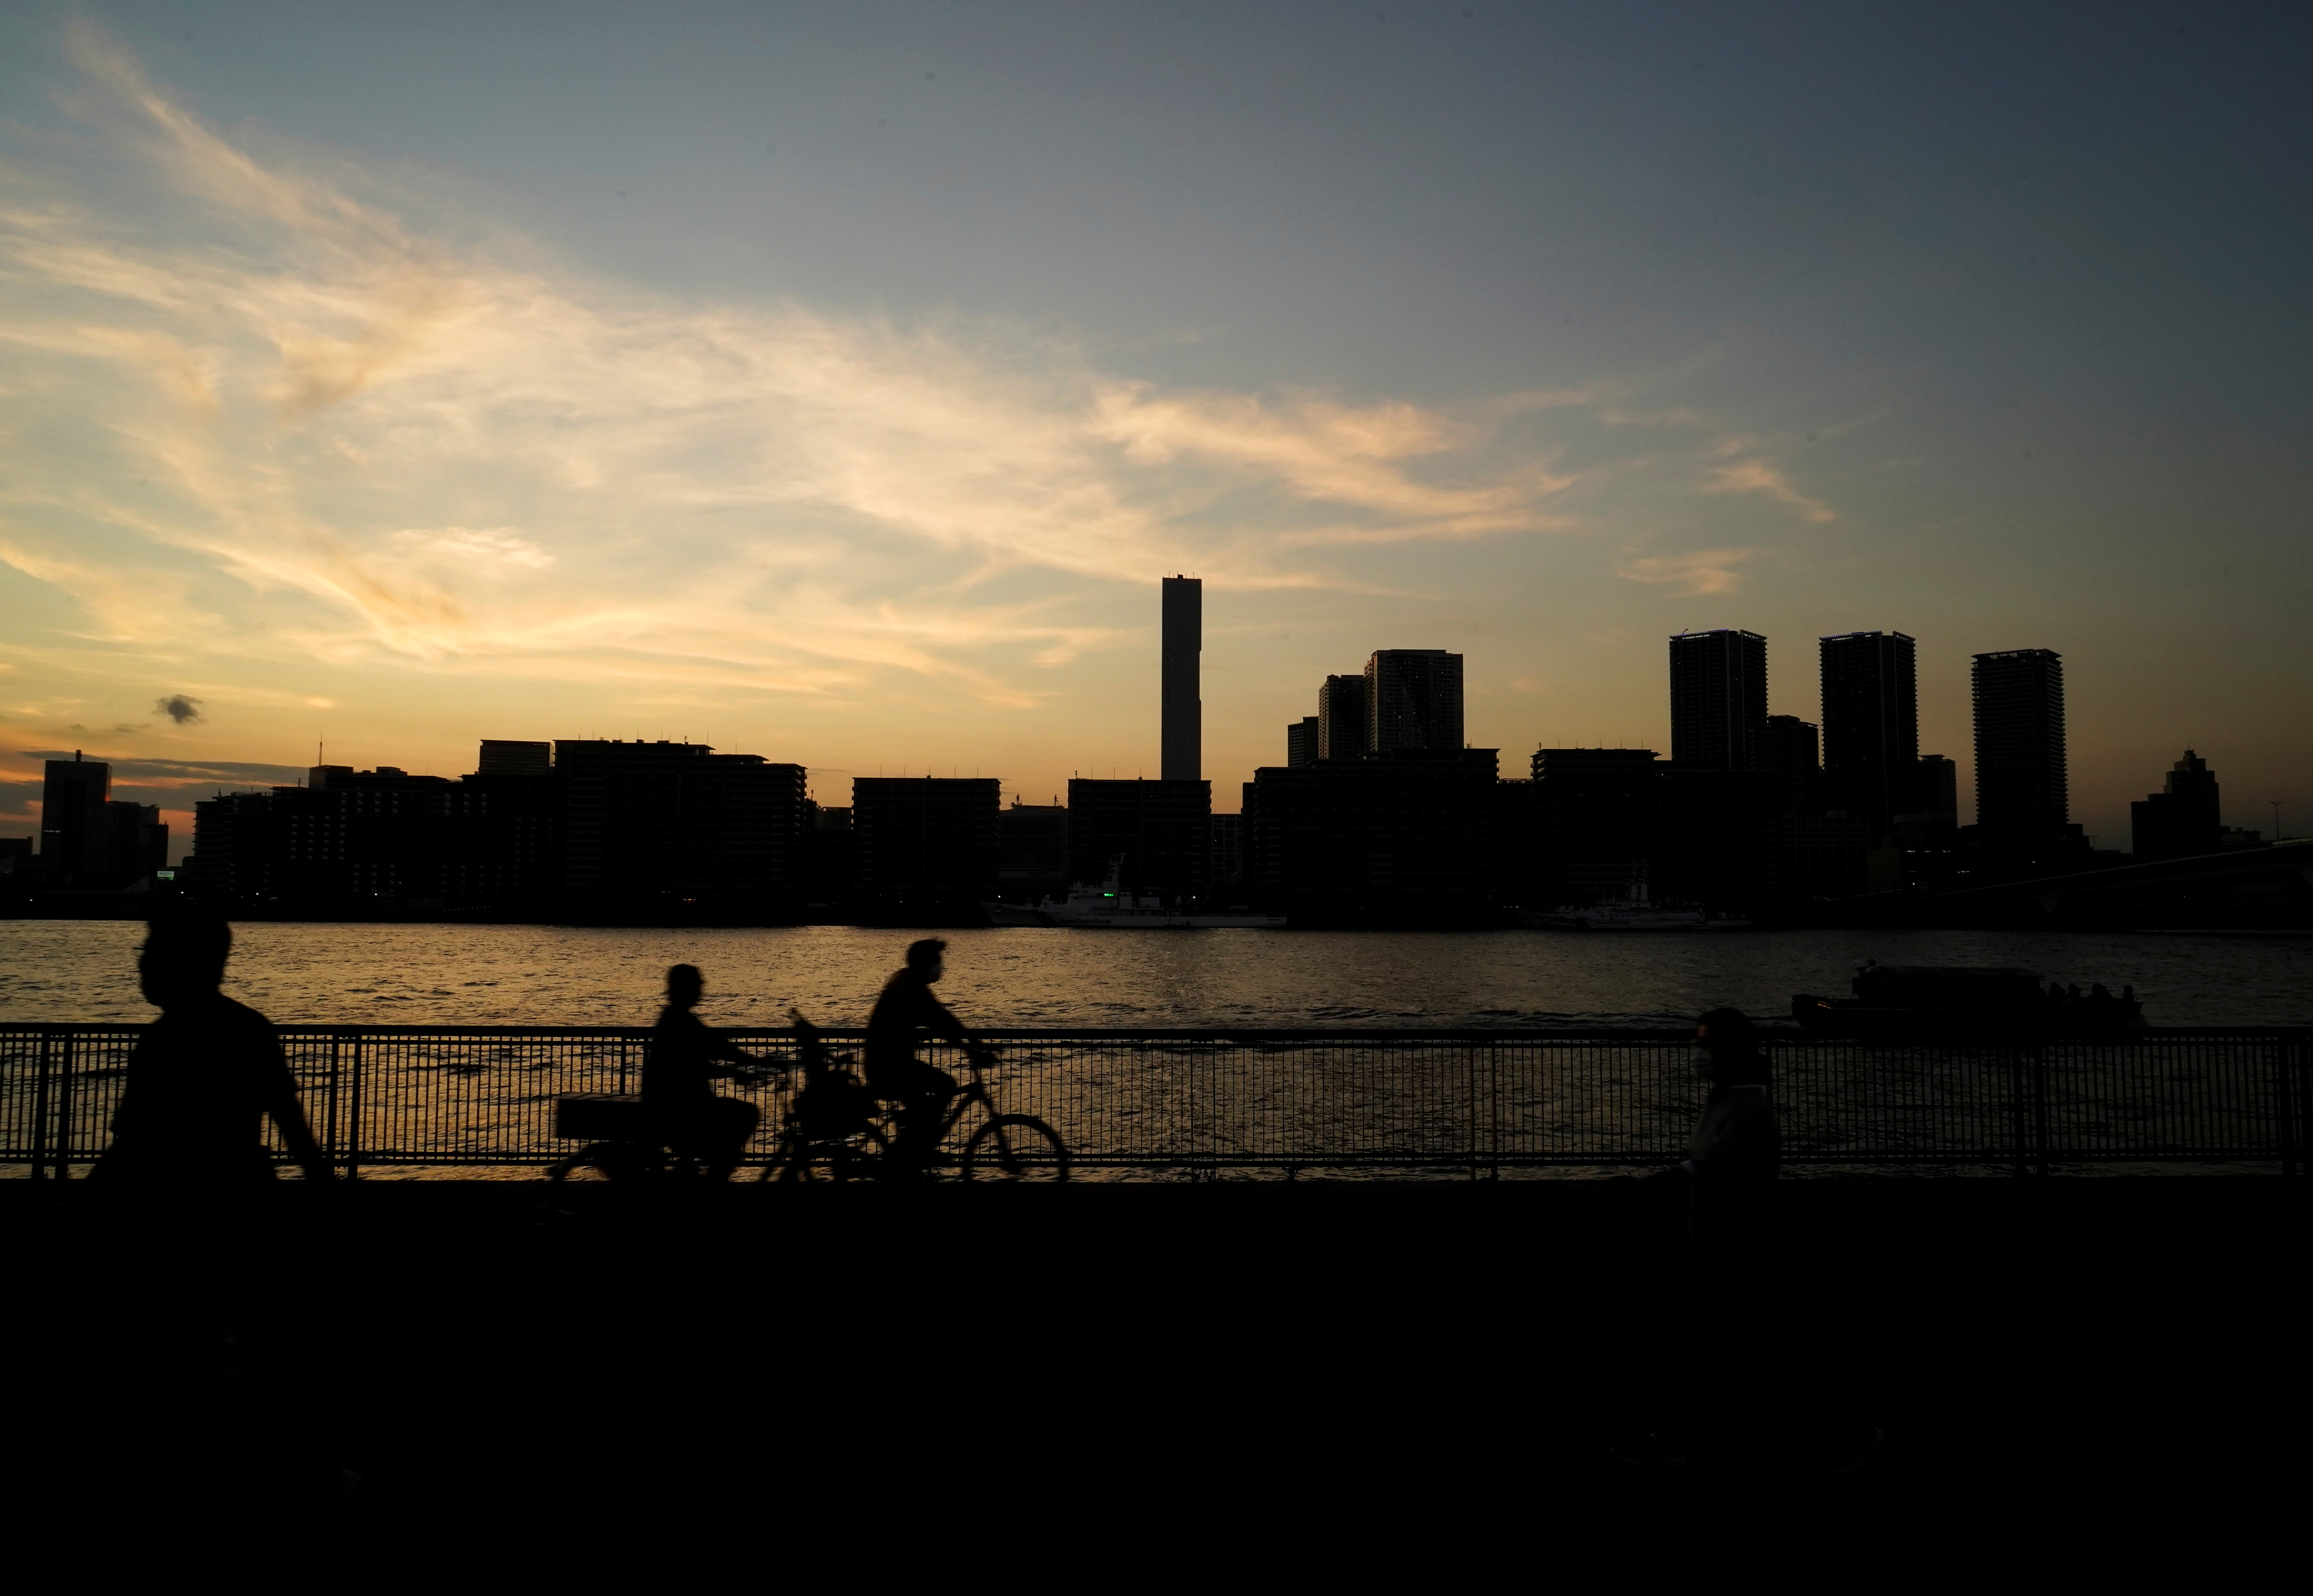 A silhouette of the 2020 Tokyo Olympic Games Athletes' Village is seen in Tokyo, Japan, July 19, 2021. REUTERS/Naoki Ogura